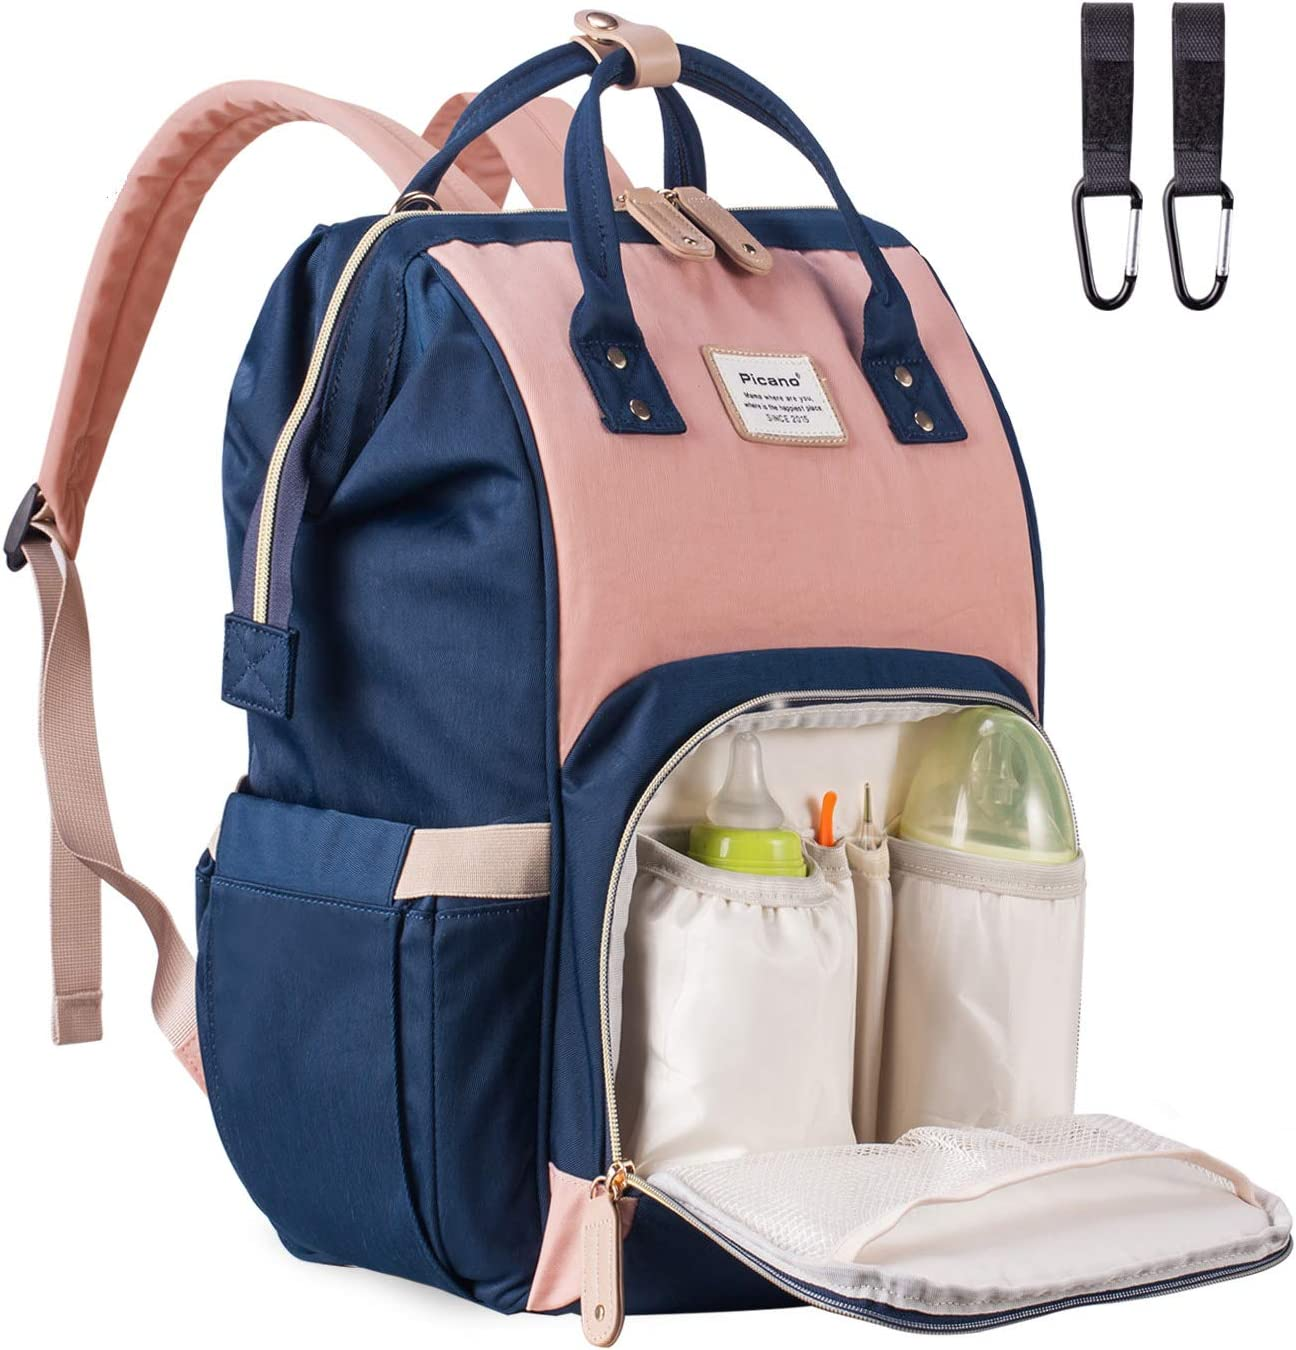 Pink /& Blue Acdyion Travel Multi-Function Large Nappy Bag with Insulated Pocket for Mom Baby Bag Changing Backpack Waterproof